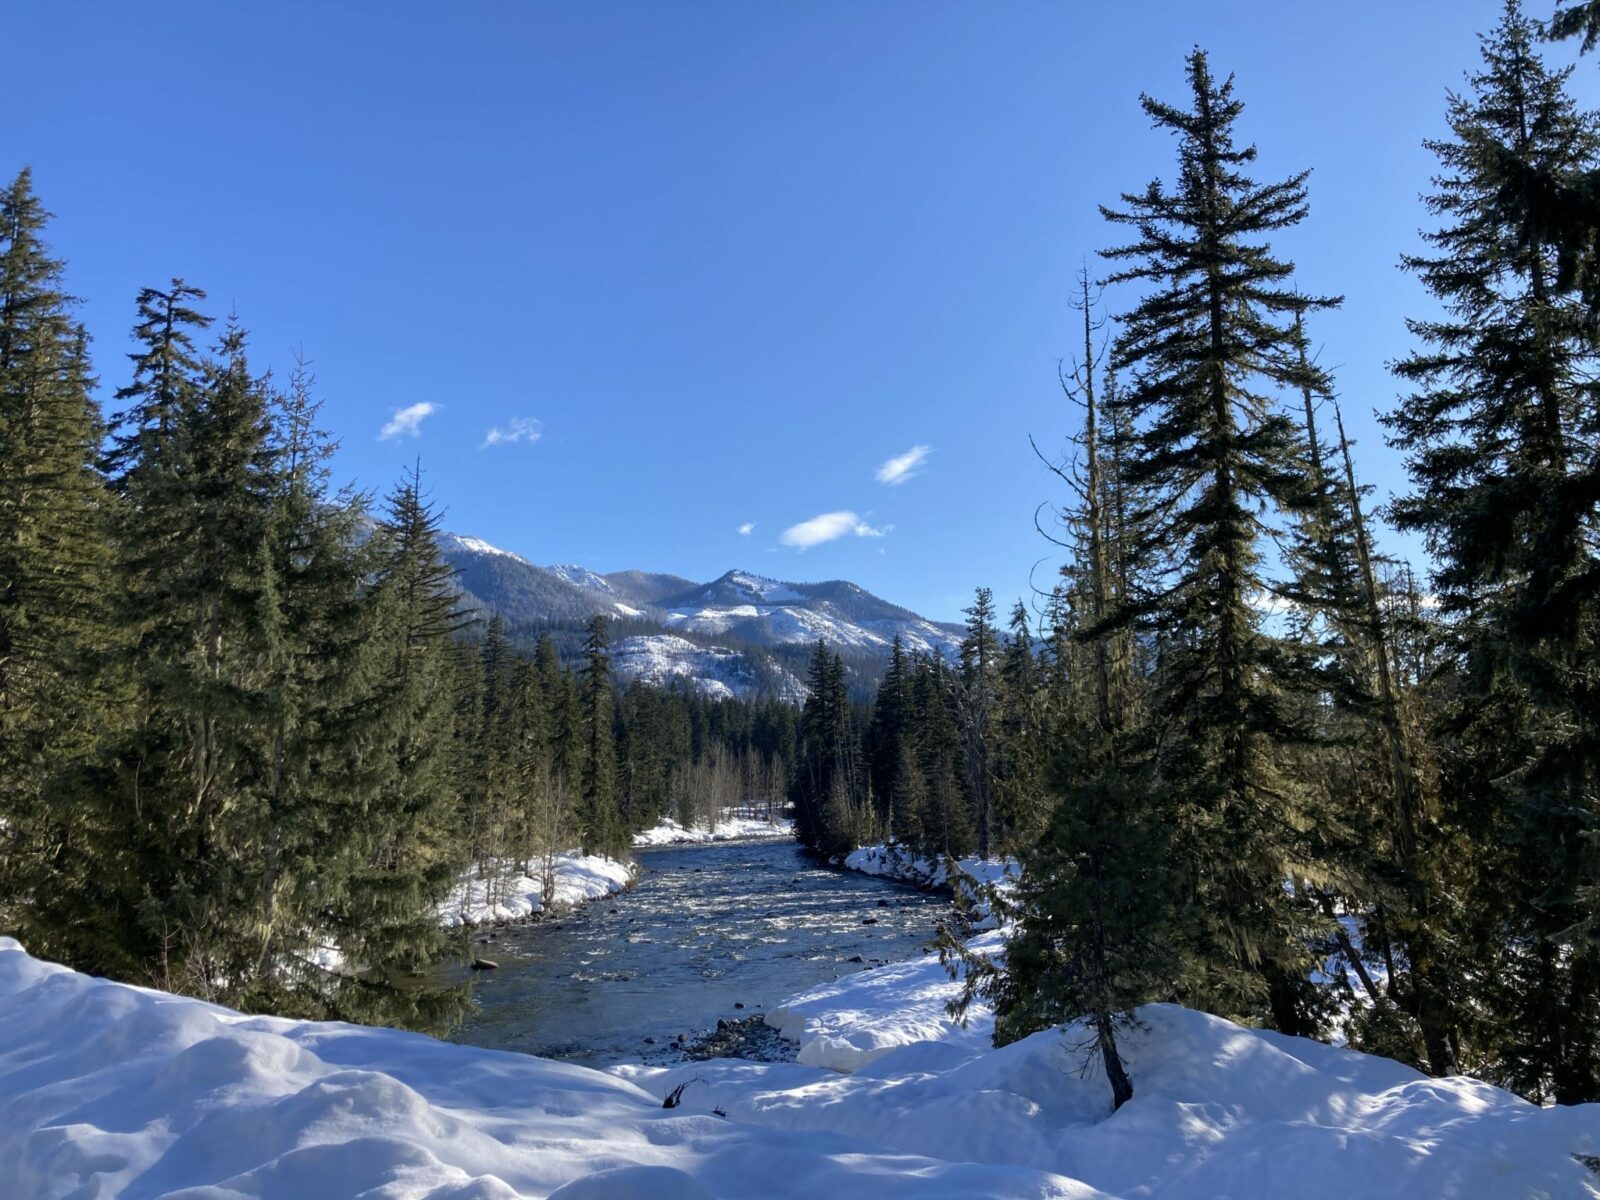 Blue sky with distant low snowy mountains. In the foreground there are evergreen trees and snow around a fast moving river in the Salmon La Sac sno park near cle elum